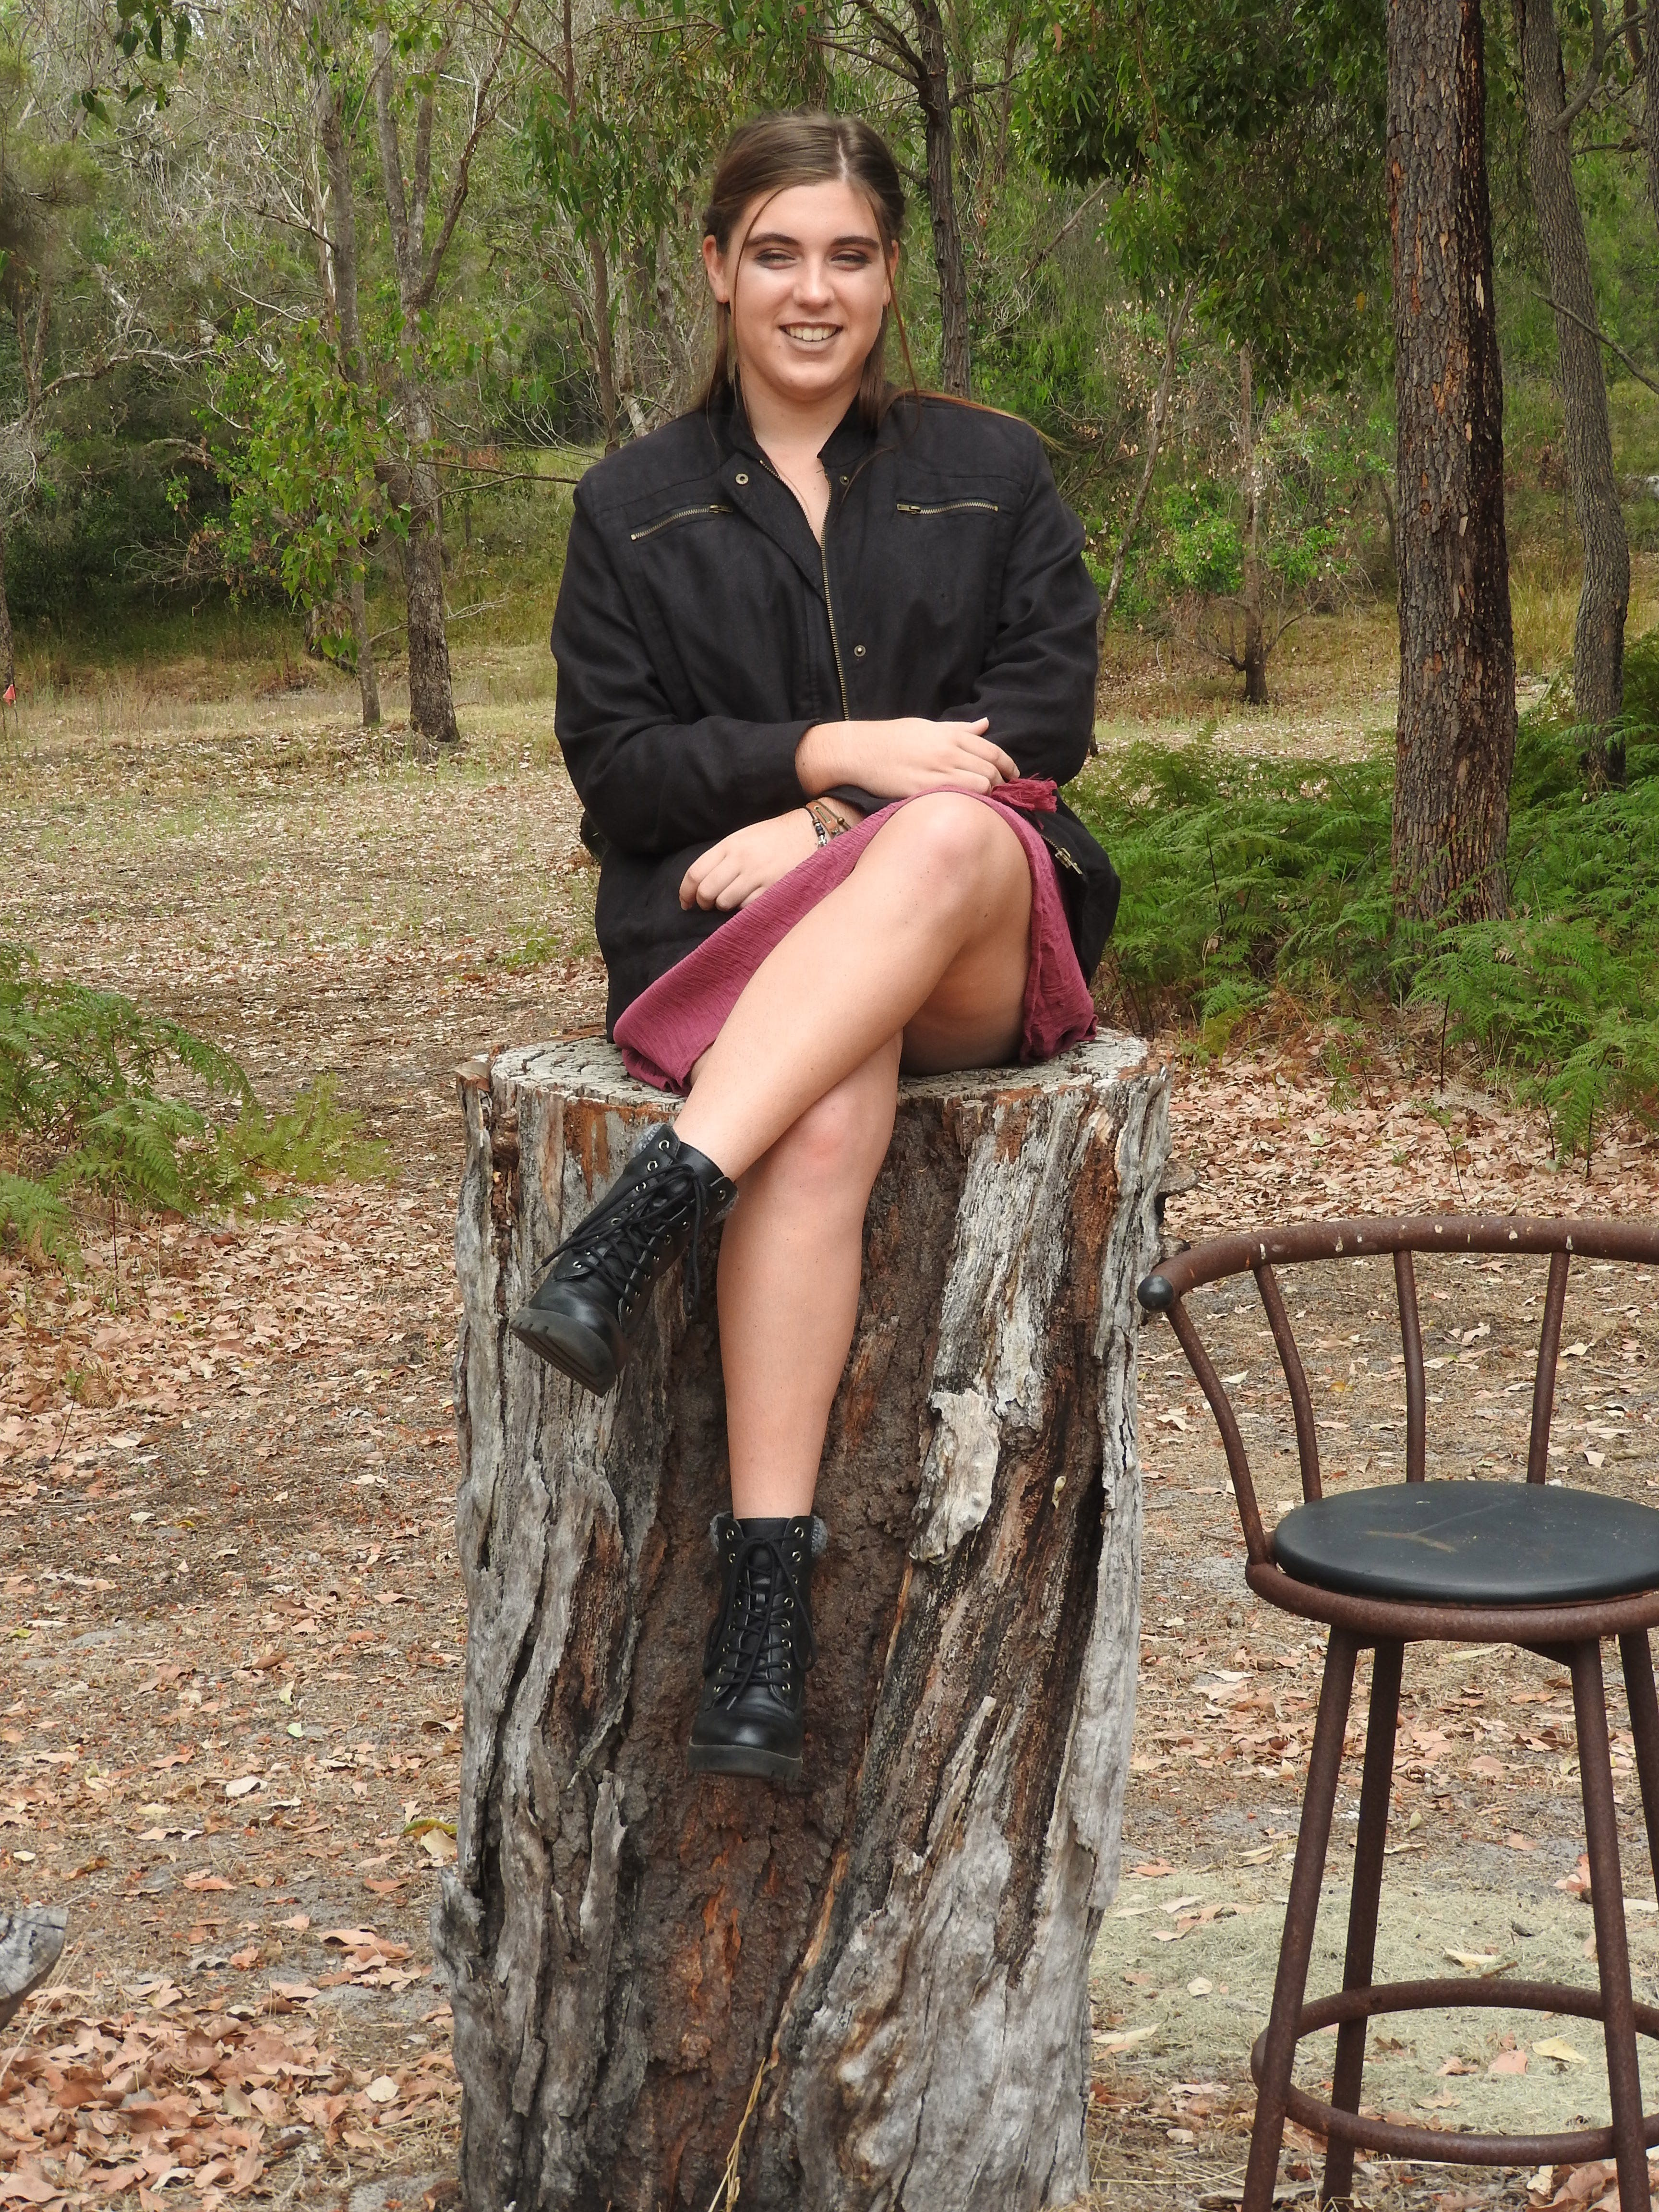 Woman Wearing Black Jacket Sitting on Tree Log Near Bar Stool